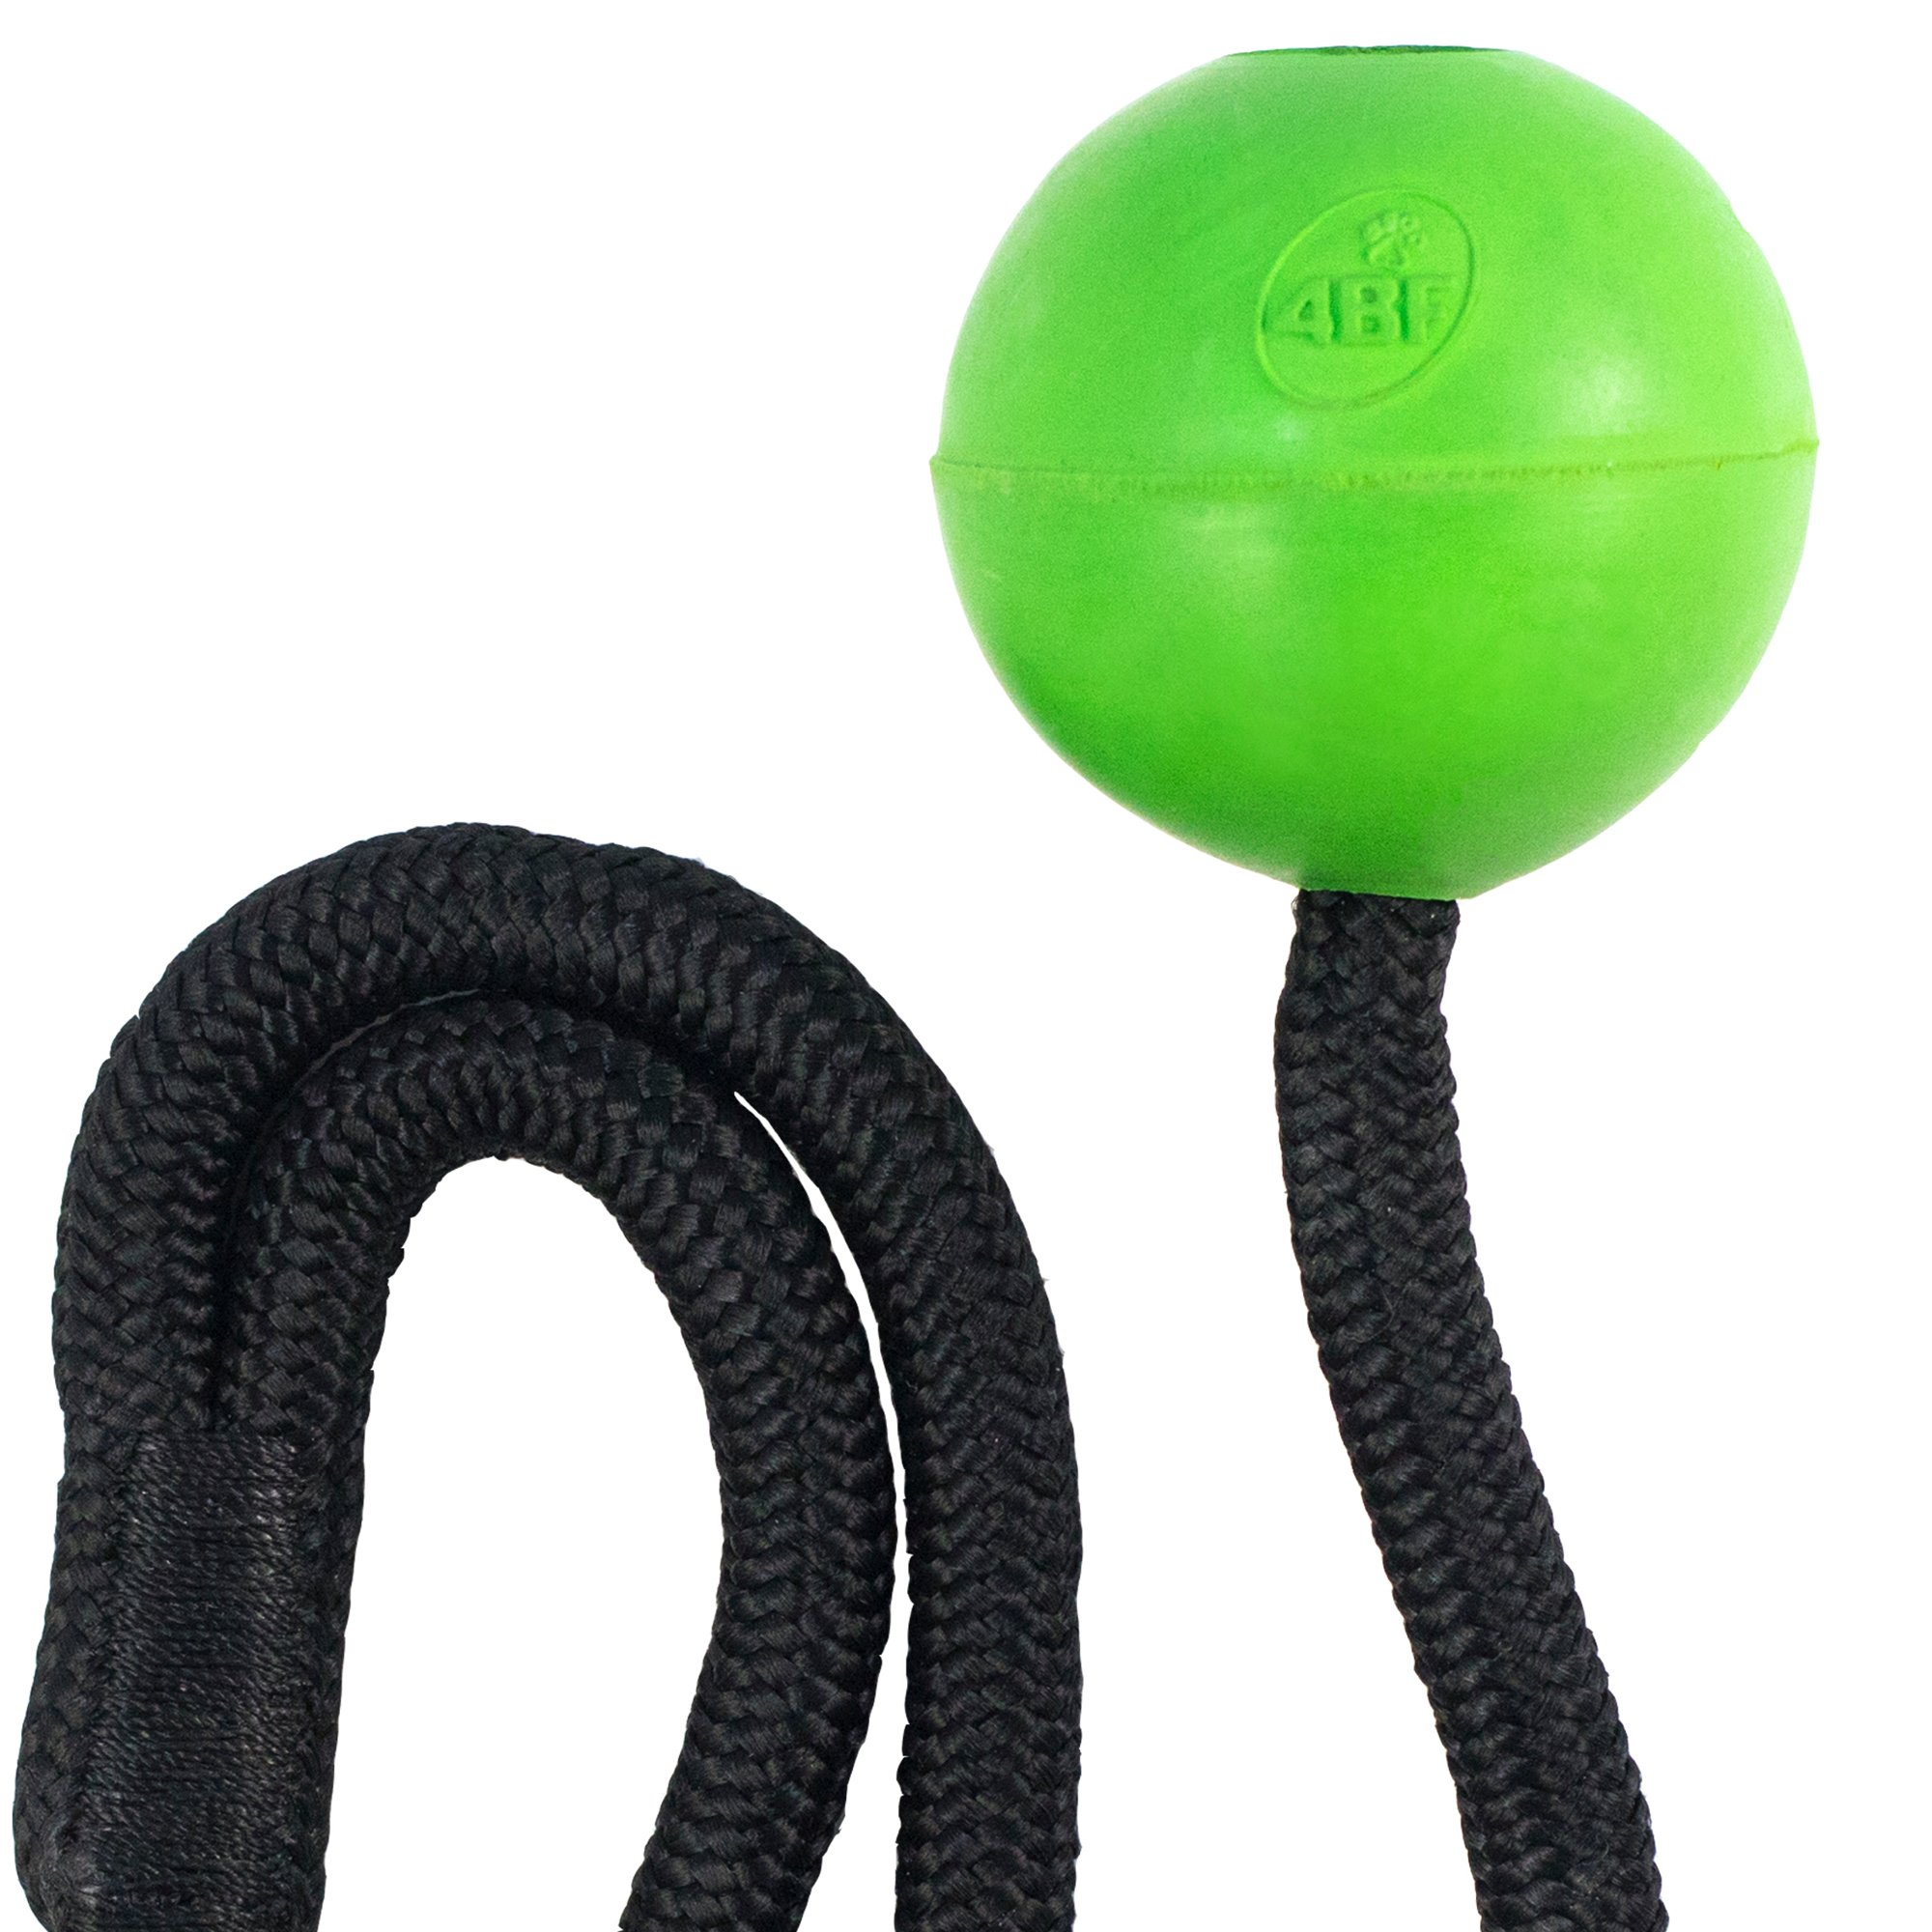 4BF Natural Rubber Crazy Bounce Rope Dog Toy, Green, Large